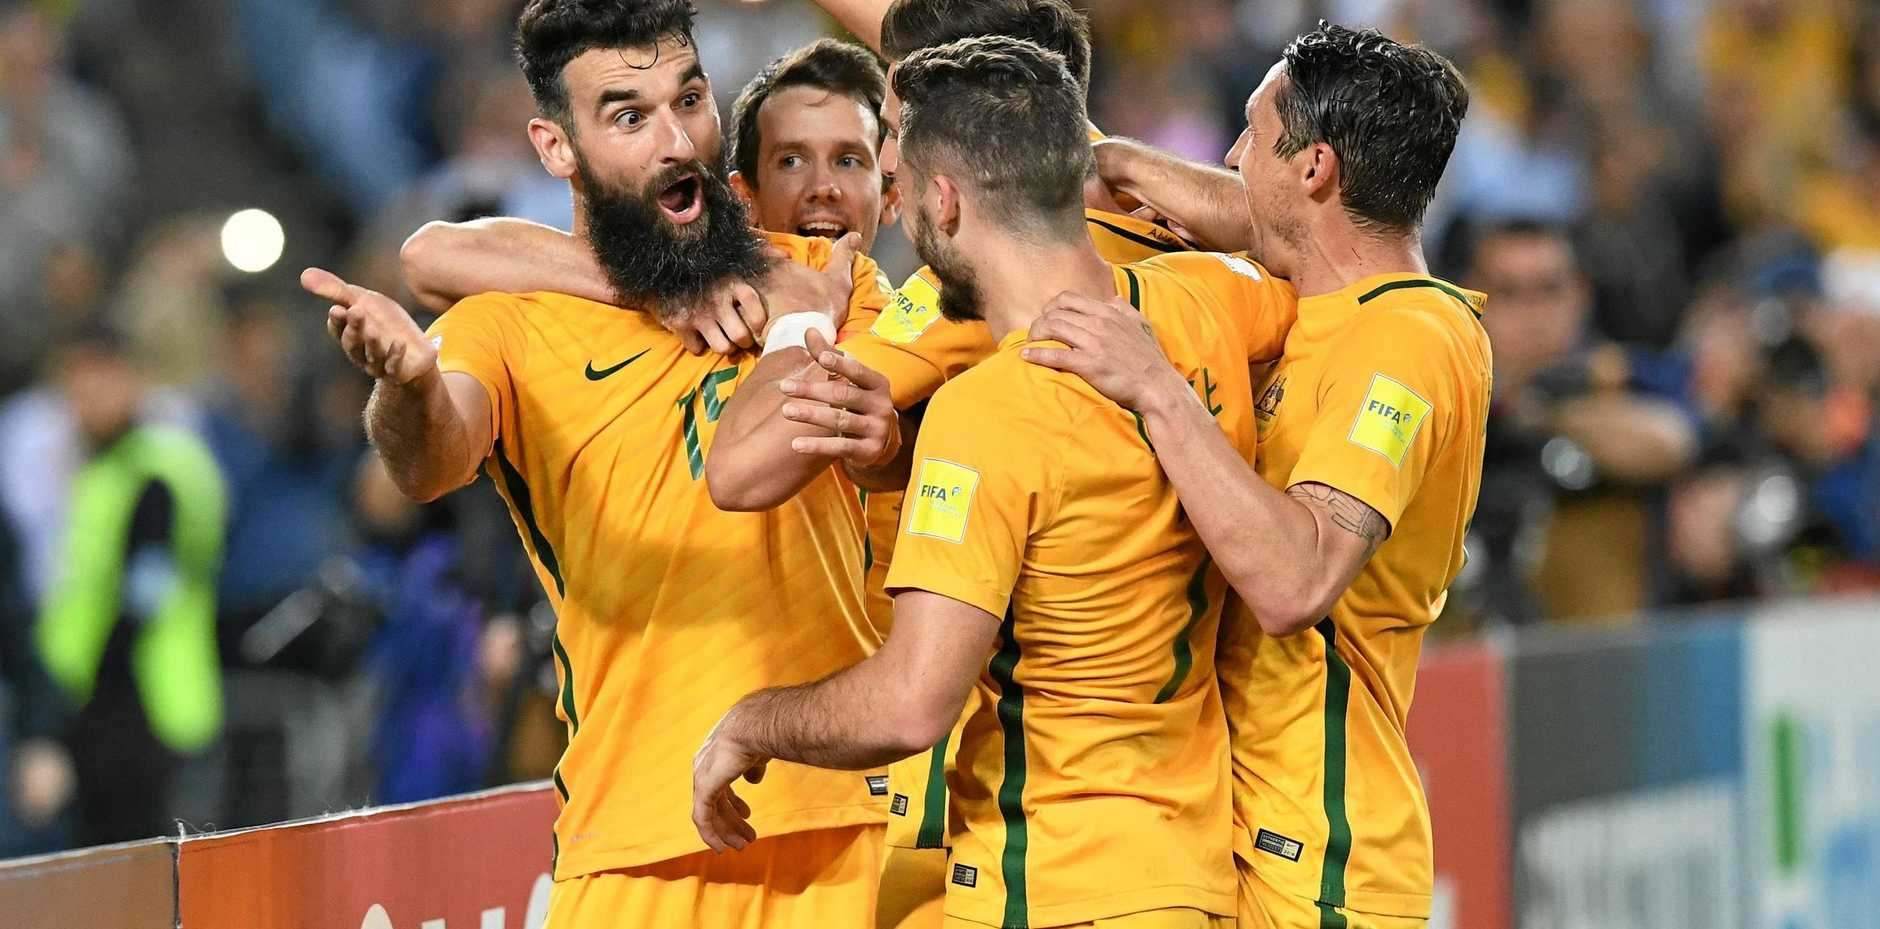 Australia's Mile Jedinak (left), celebrates after scoring against Honduras during the 2018 FIFA World Cup Intercontinental play-off football match between Australia and Honduras at Stadium Australia in Sydney, Wednesday, November 15, 2017.(AAP Image/Brendan Esposito) NO ARCHIVING, EDITORIAL USE ONLY